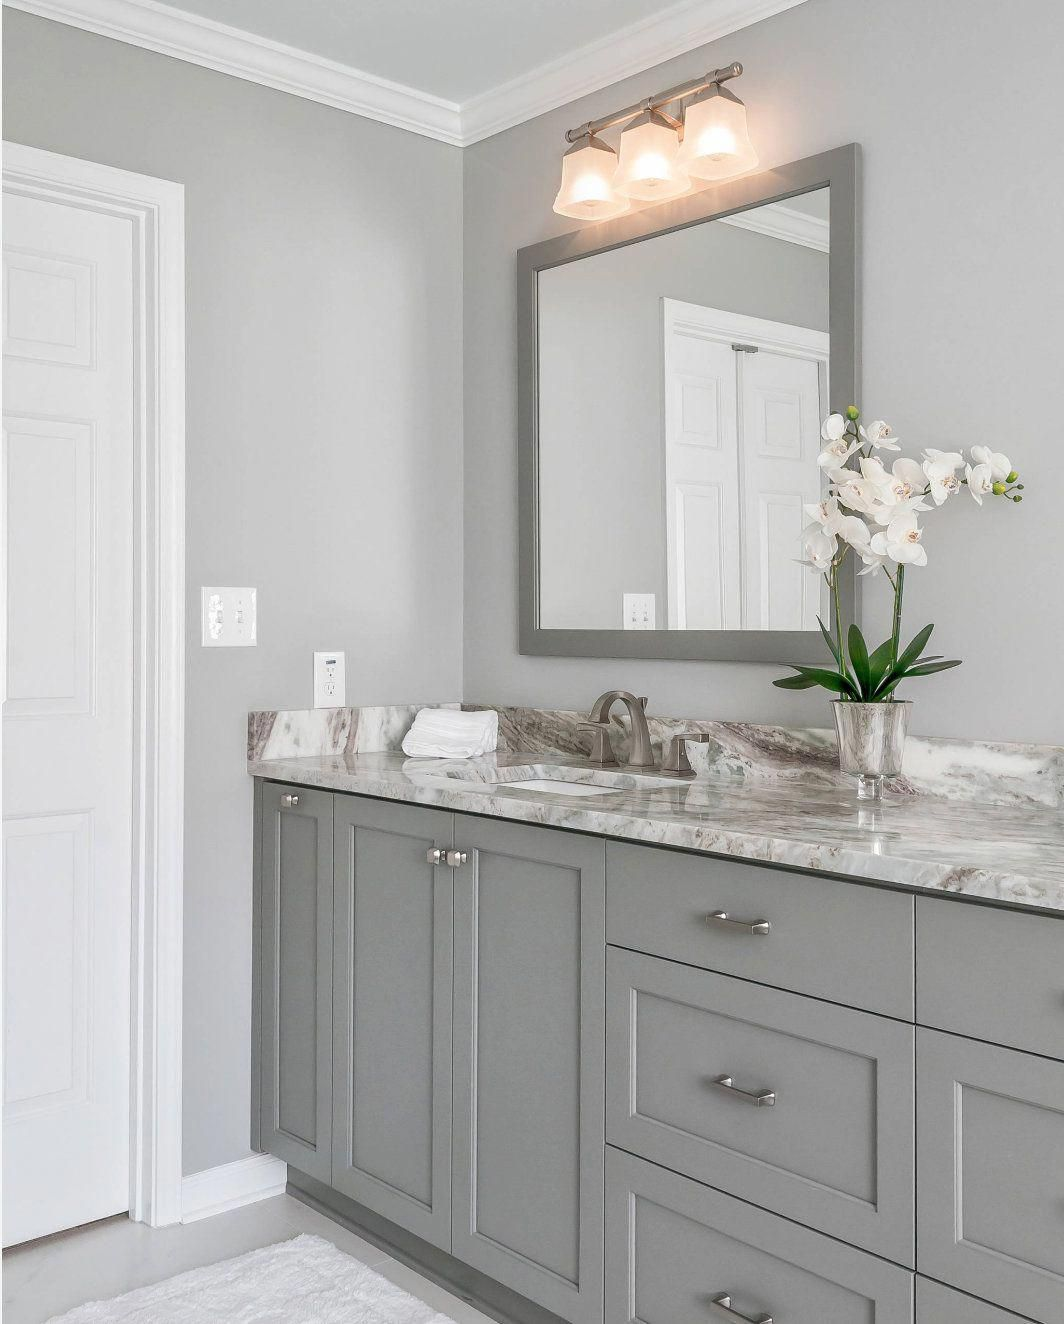 20 Ideas For Grey Kitchens Both: This Unique Photo Is Definitely An Inspirational And